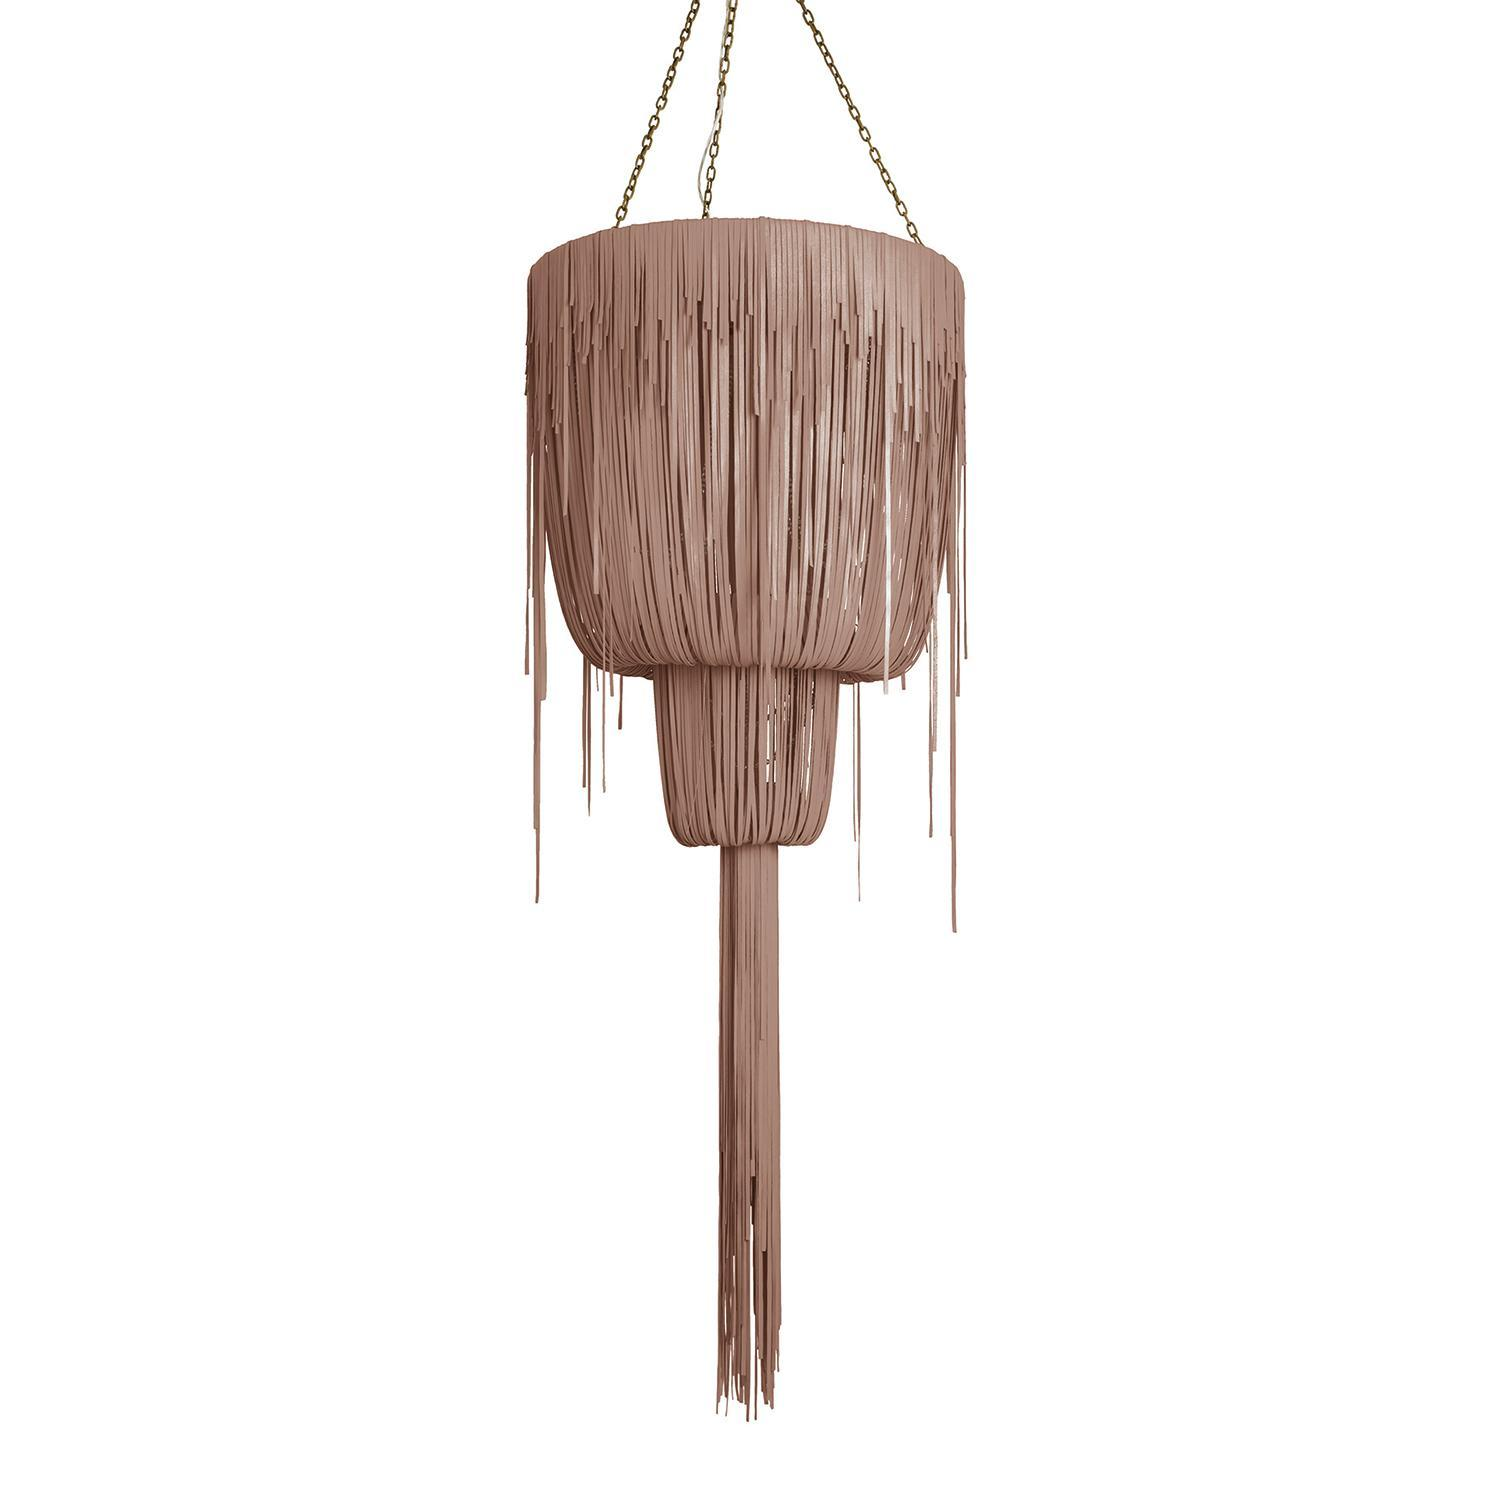 Urchin Chandelier - Medium Double-Ball - Metallic Leather (Made to Order)